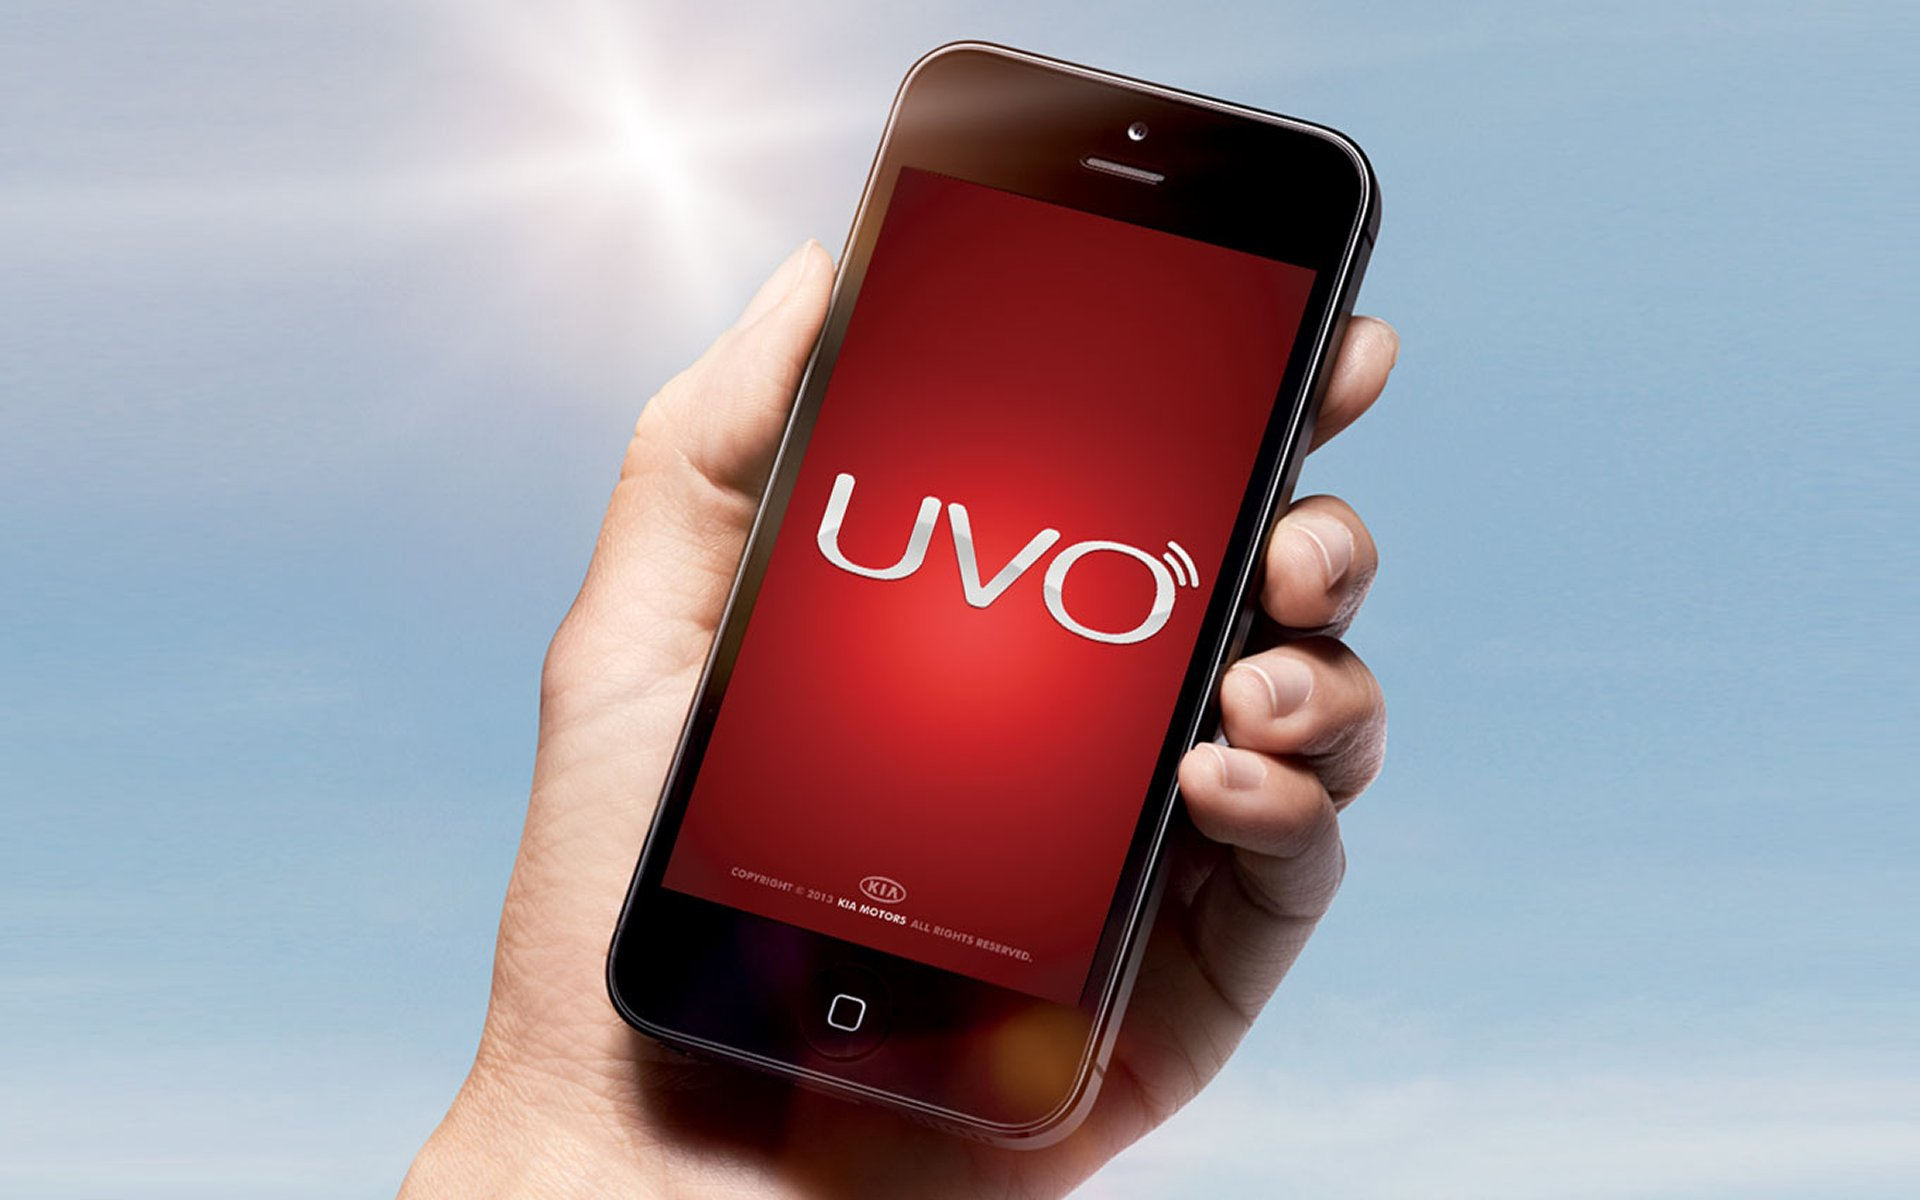 Smartphone with UVO on screen